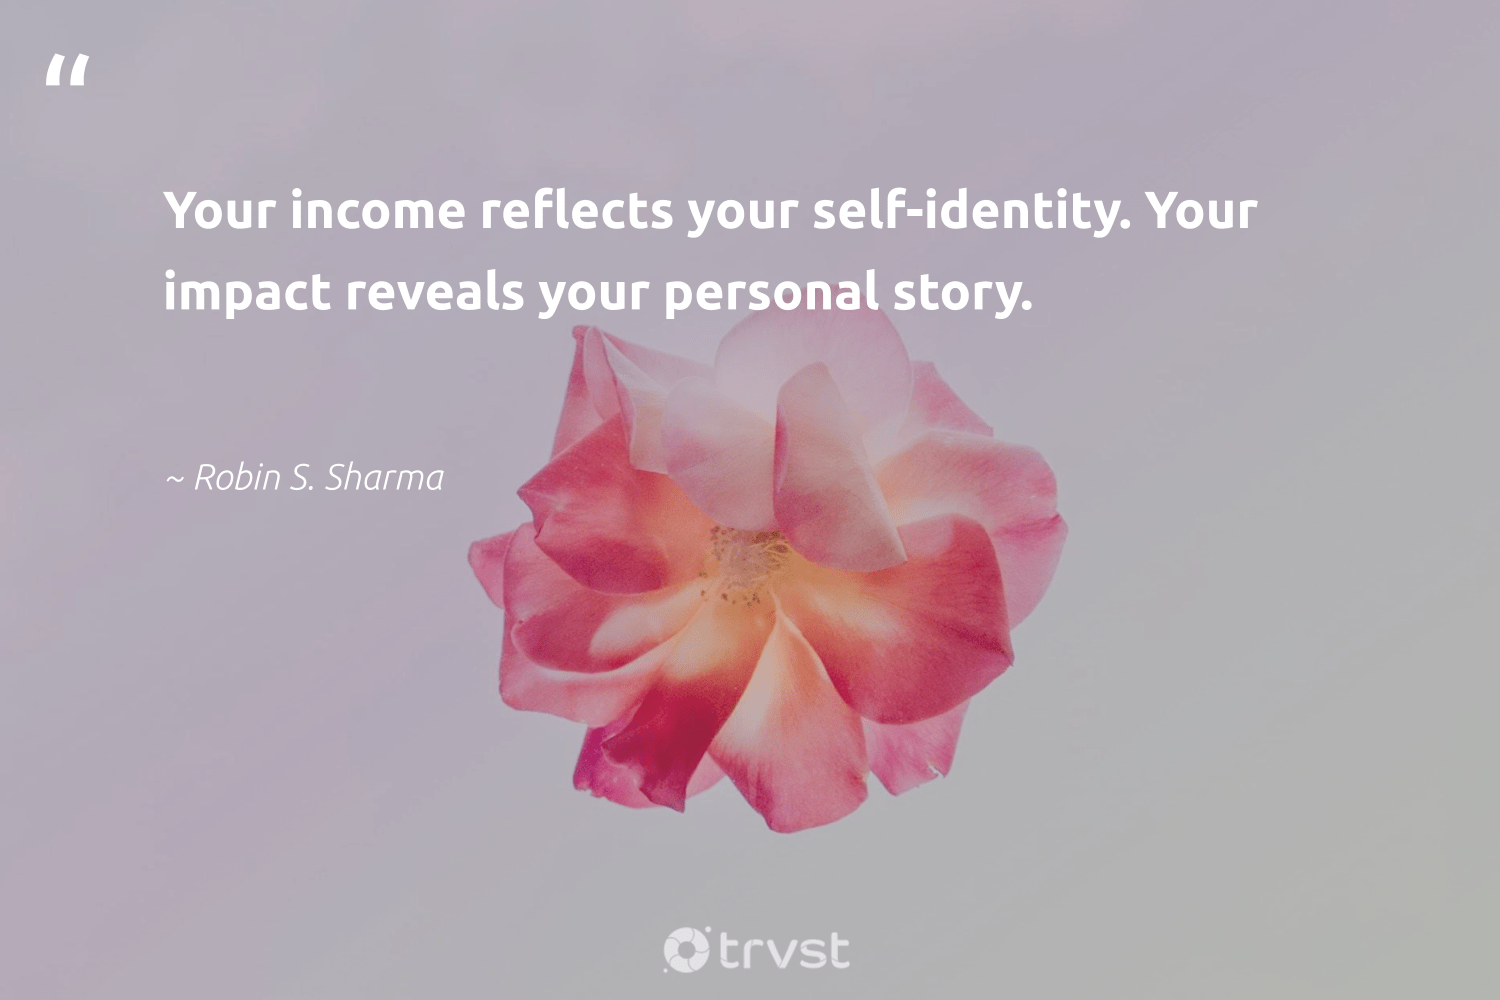 """""""Your income reflects your self-identity. Your impact reveals your personal story.""""  - Robin S. Sharma #trvst #quotes #impact #weareallone #takeaction #giveback #dogood #socialchange #planetearthfirst #betterplanet #ecoconscious #ethicalbusiness"""